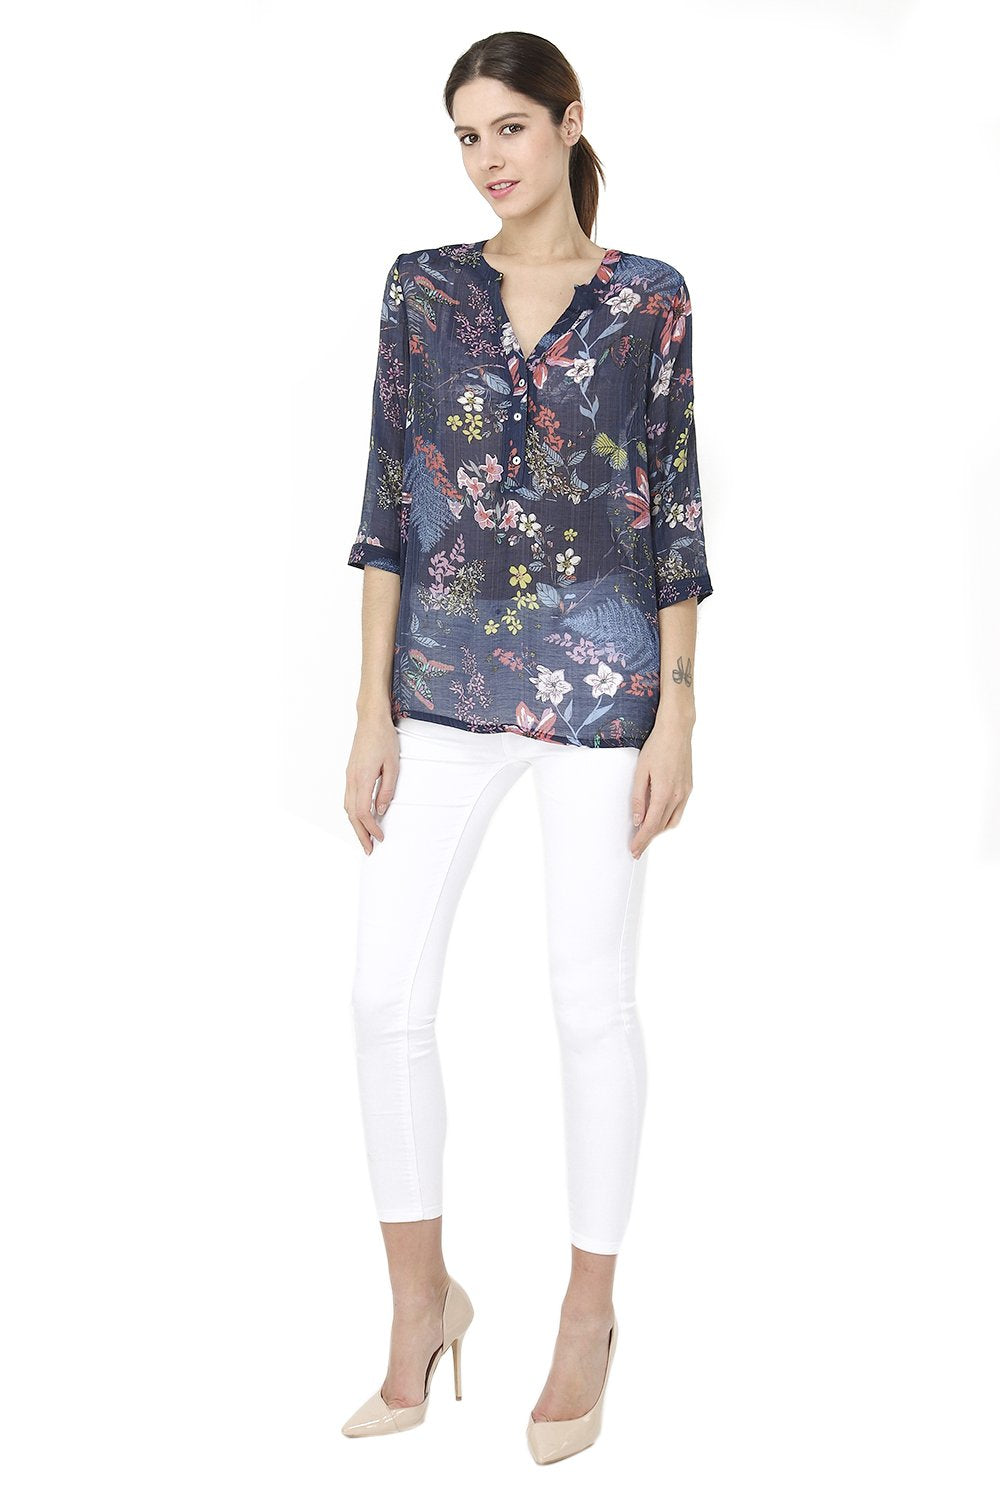 FLORAL PATTERN BLOUSE WITH BUTTONS